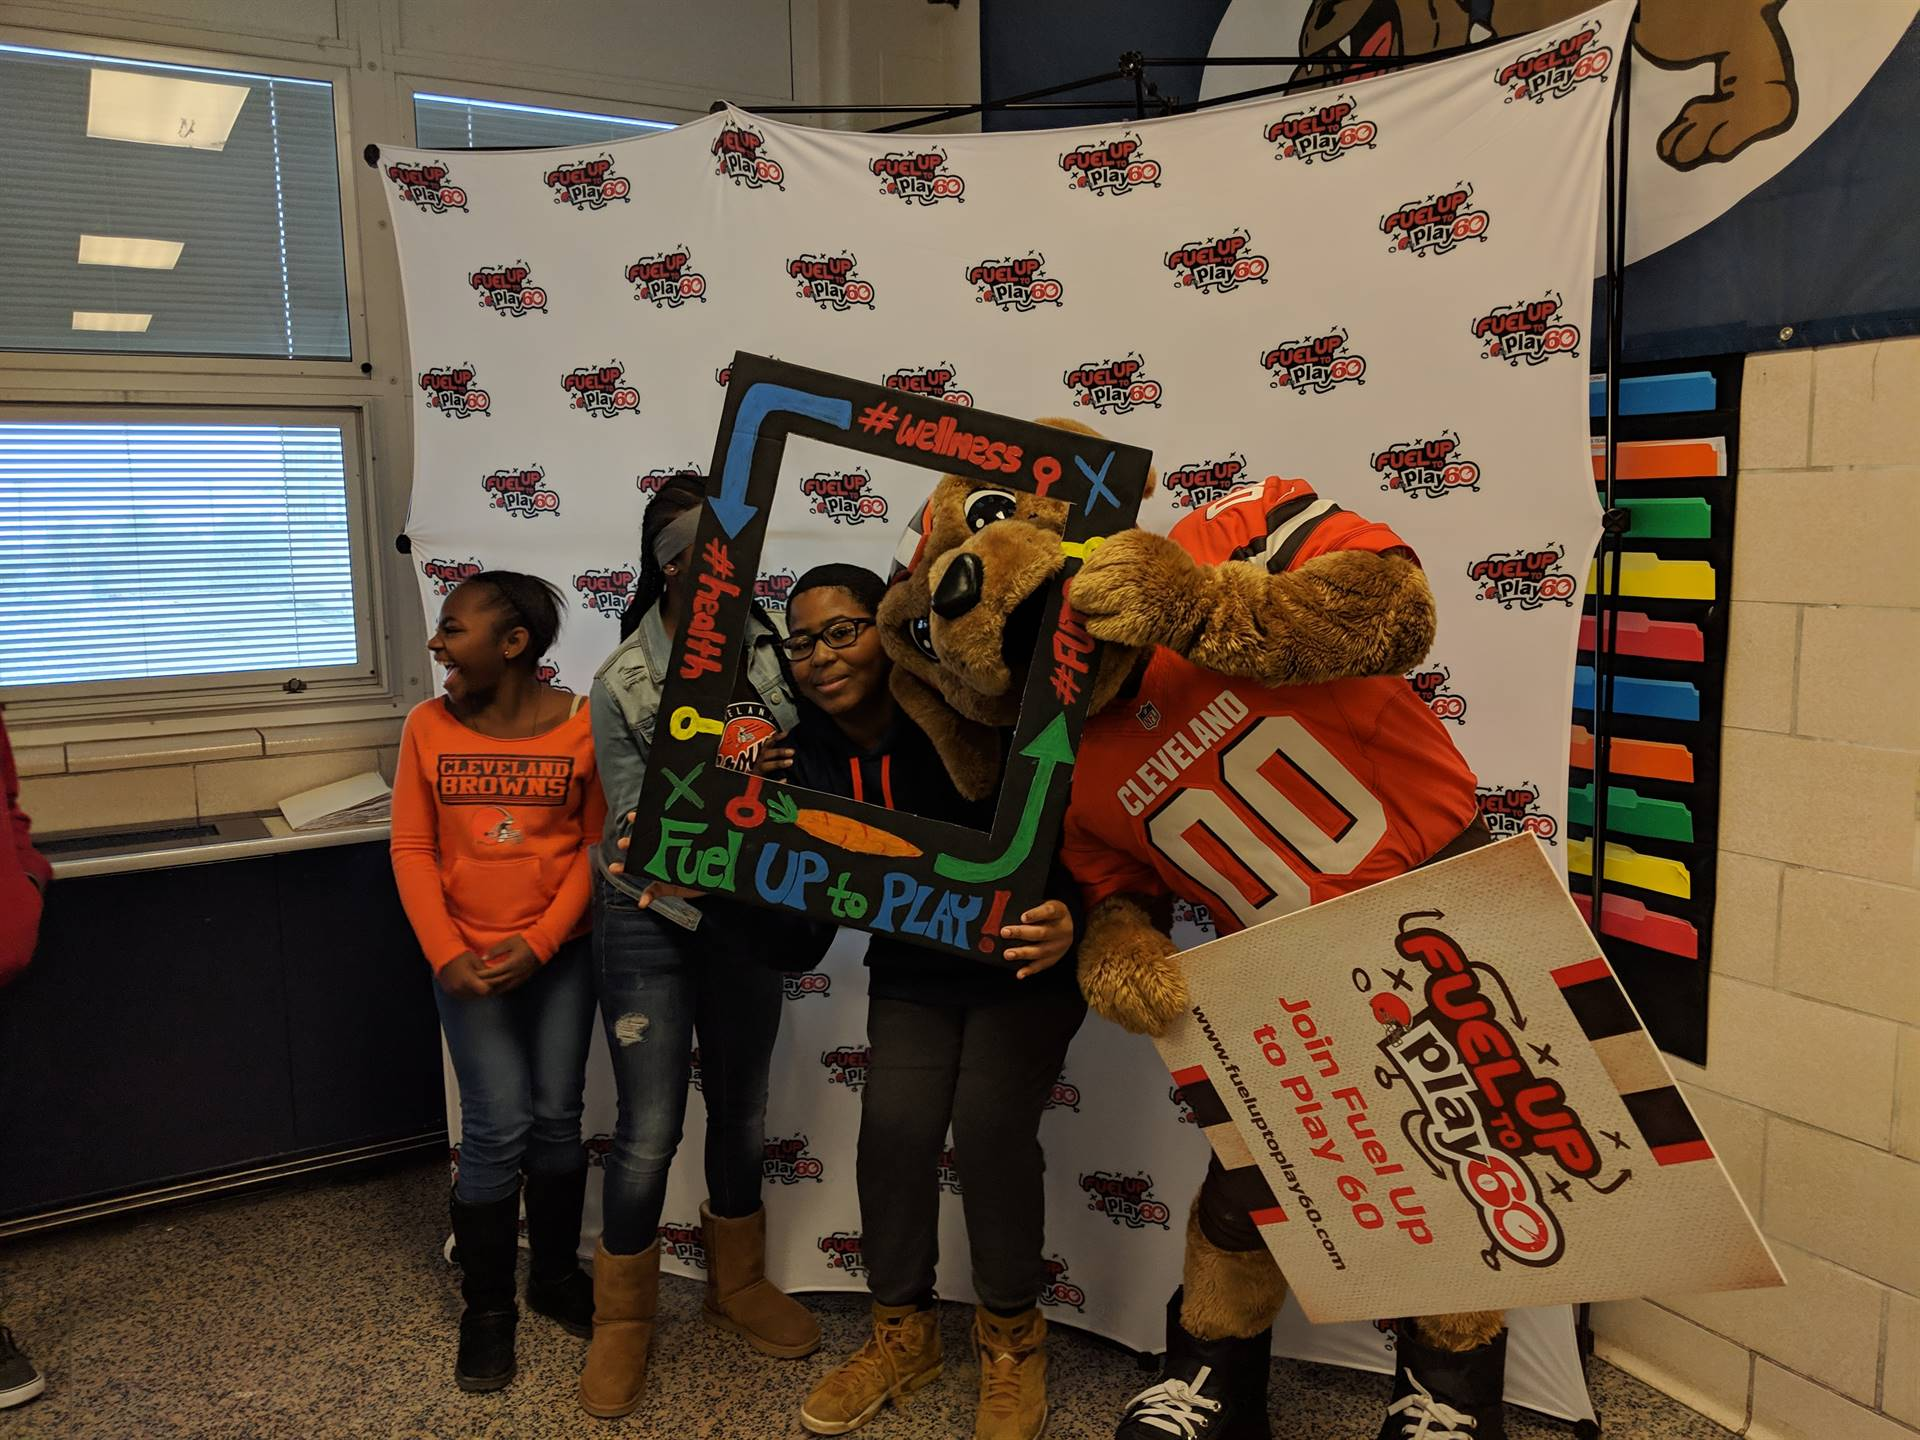 Students posing with Chomps mascot.